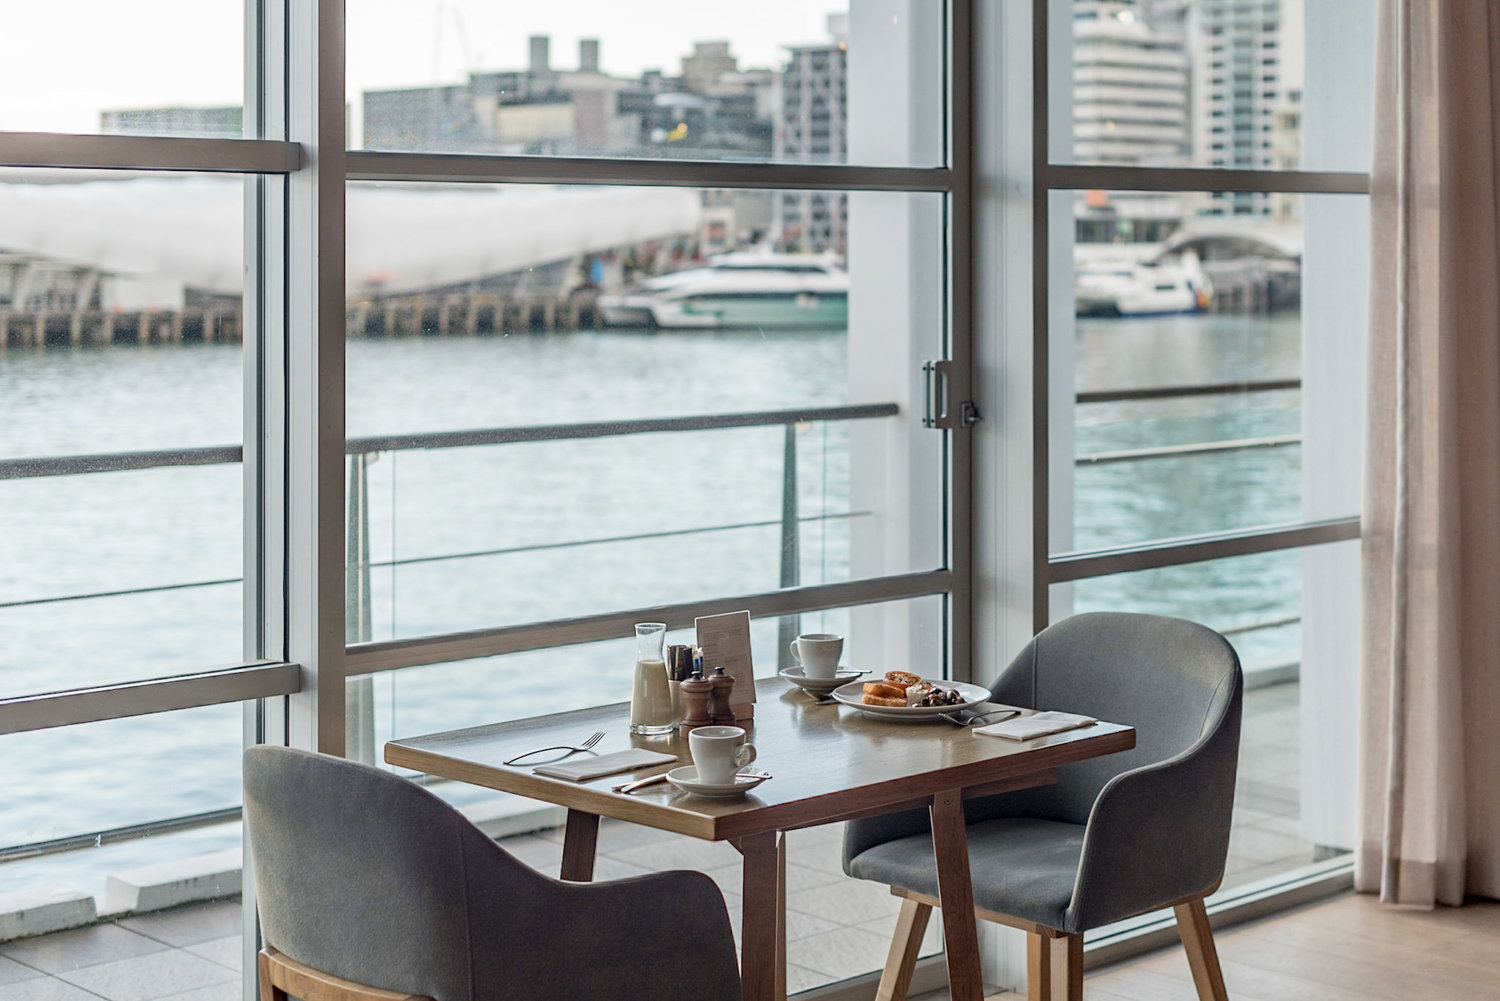 Hotel Review: Hilton Auckland (Deluxe Harbour View Room) - Fantastic View of the Harbour and CBD!